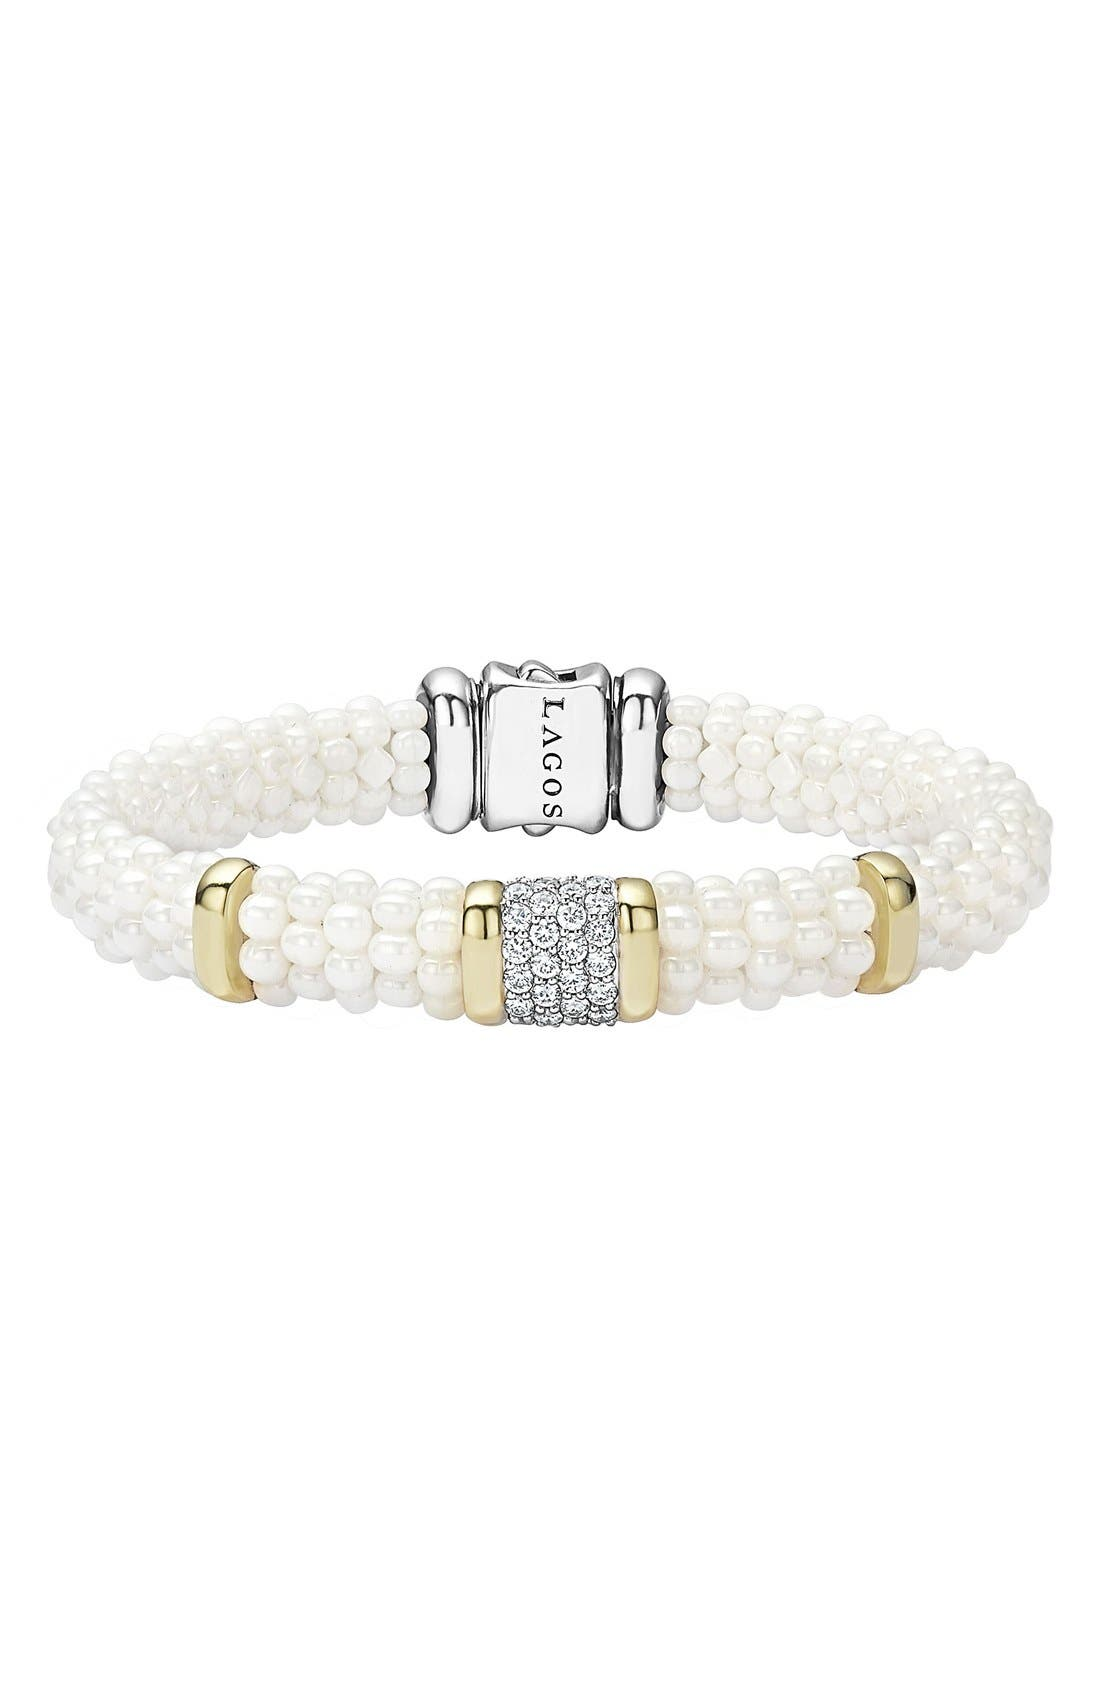 'White Caviar' Diamond Rope Bracelet,                             Main thumbnail 1, color,                             WHITE CAVIAR/ YELLOW GOLD